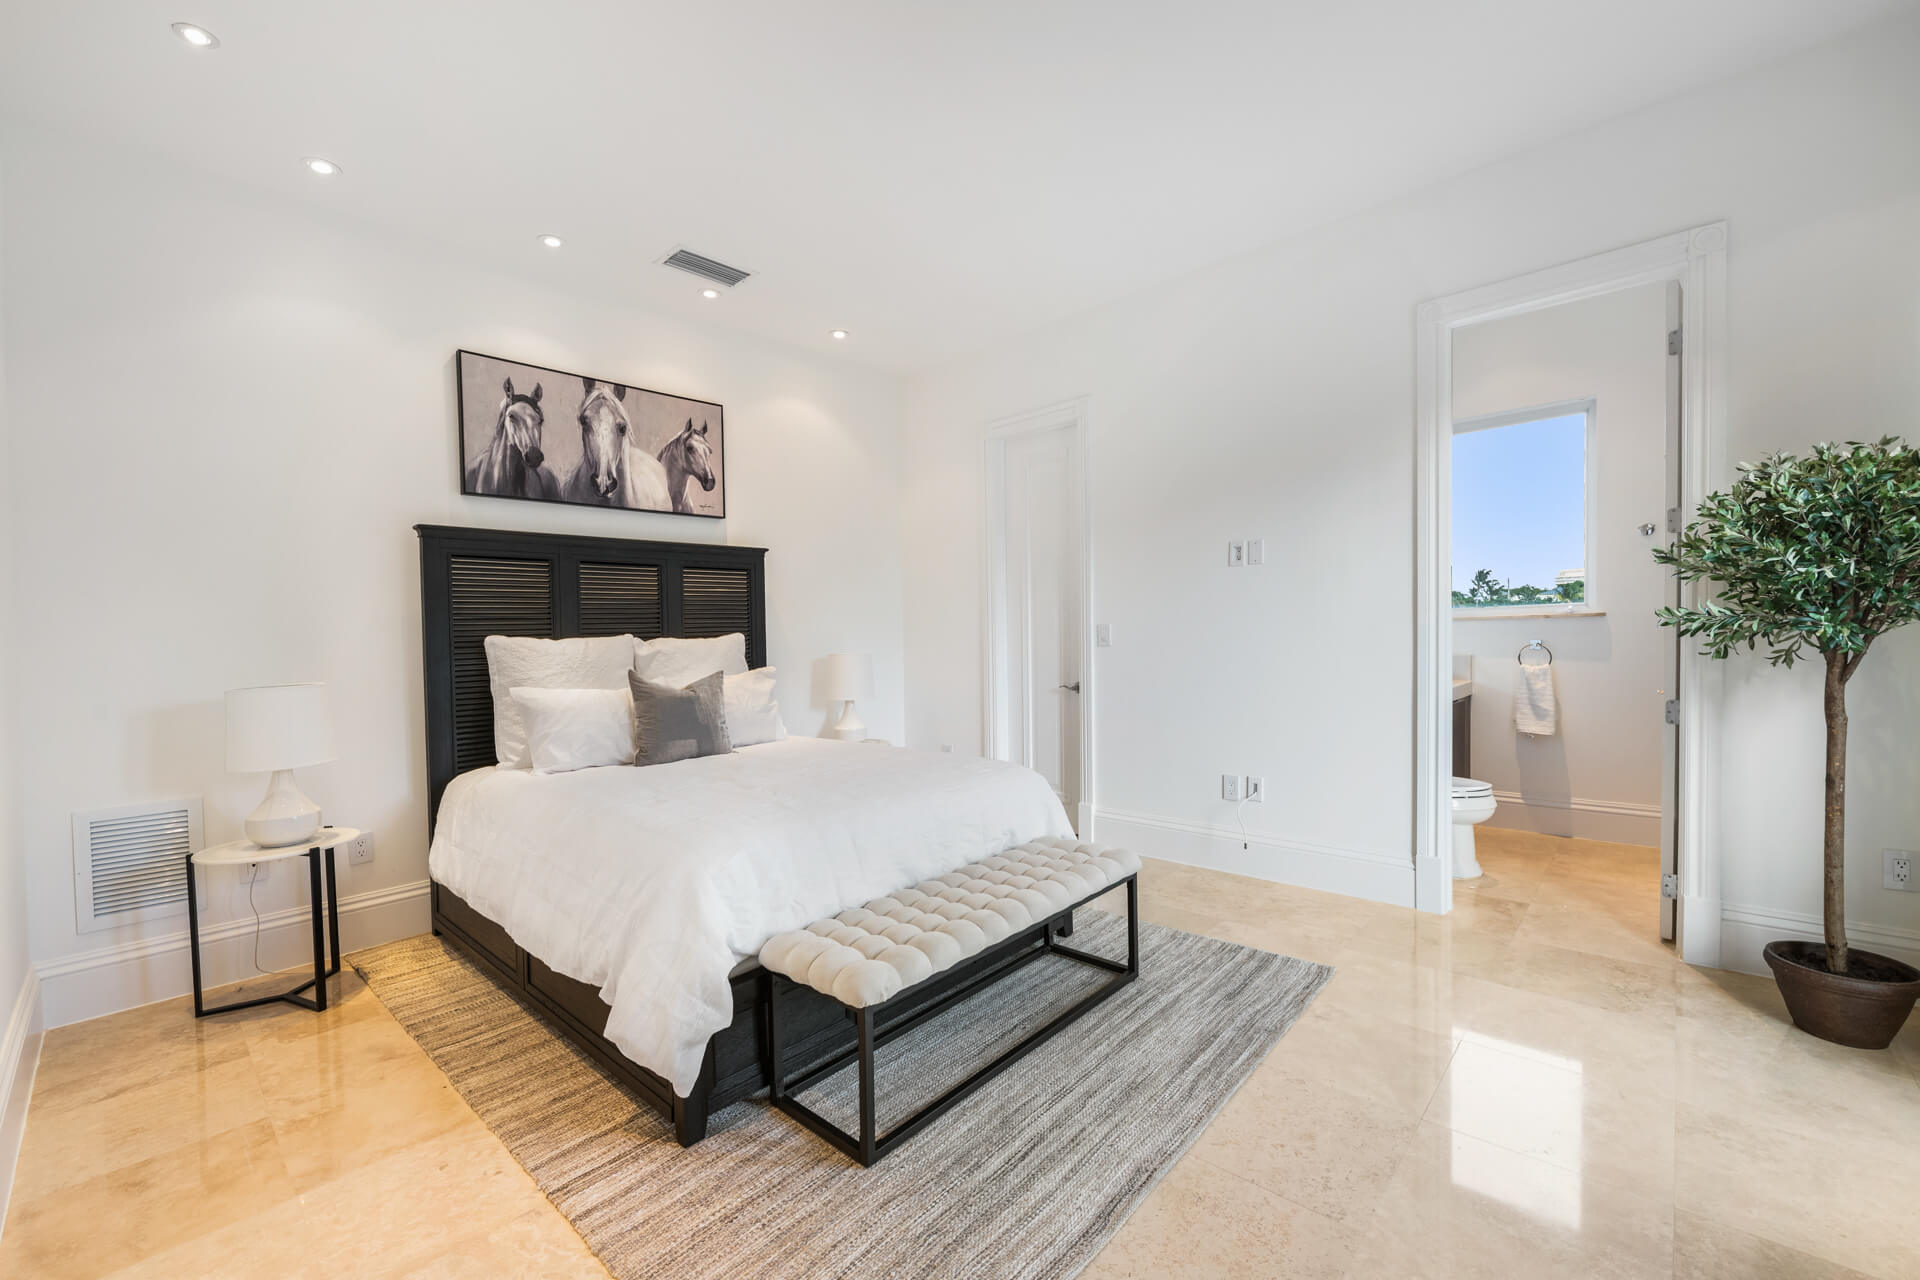 South Florida Home Staging - Guest Bedroom